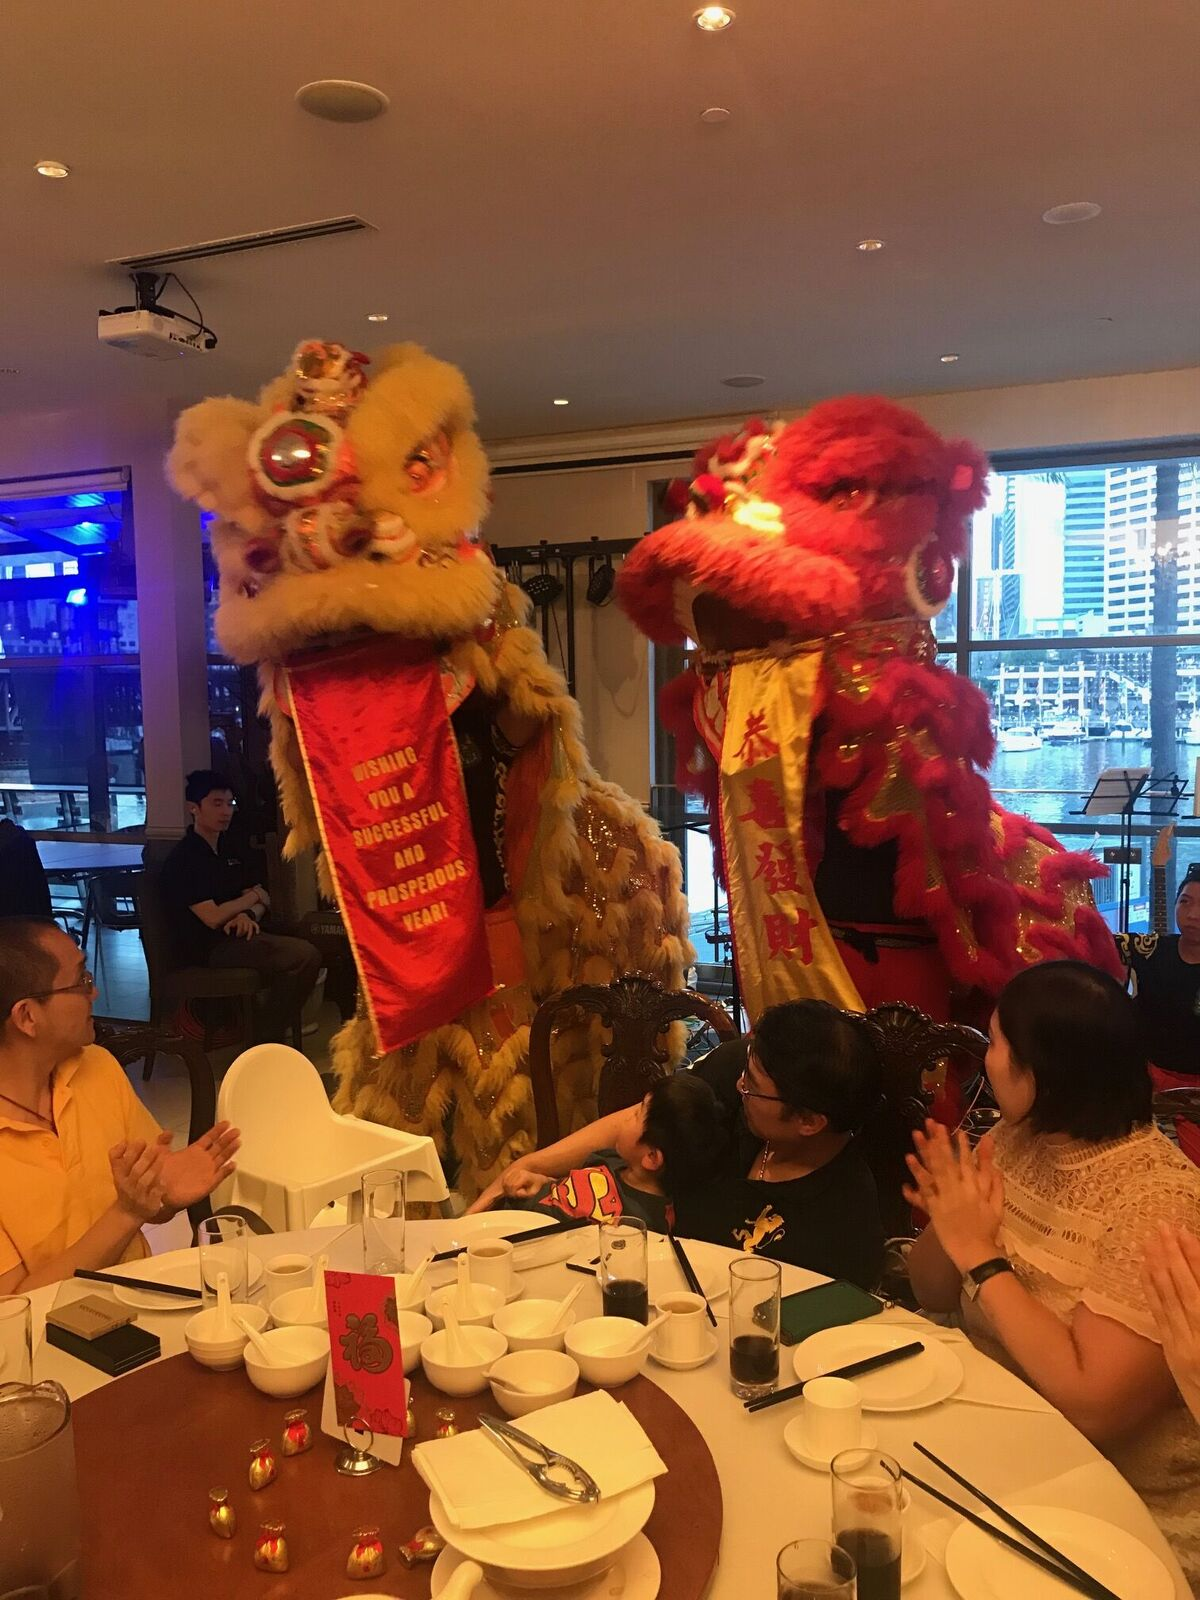 ACMA Welcomes The Year of the Dog